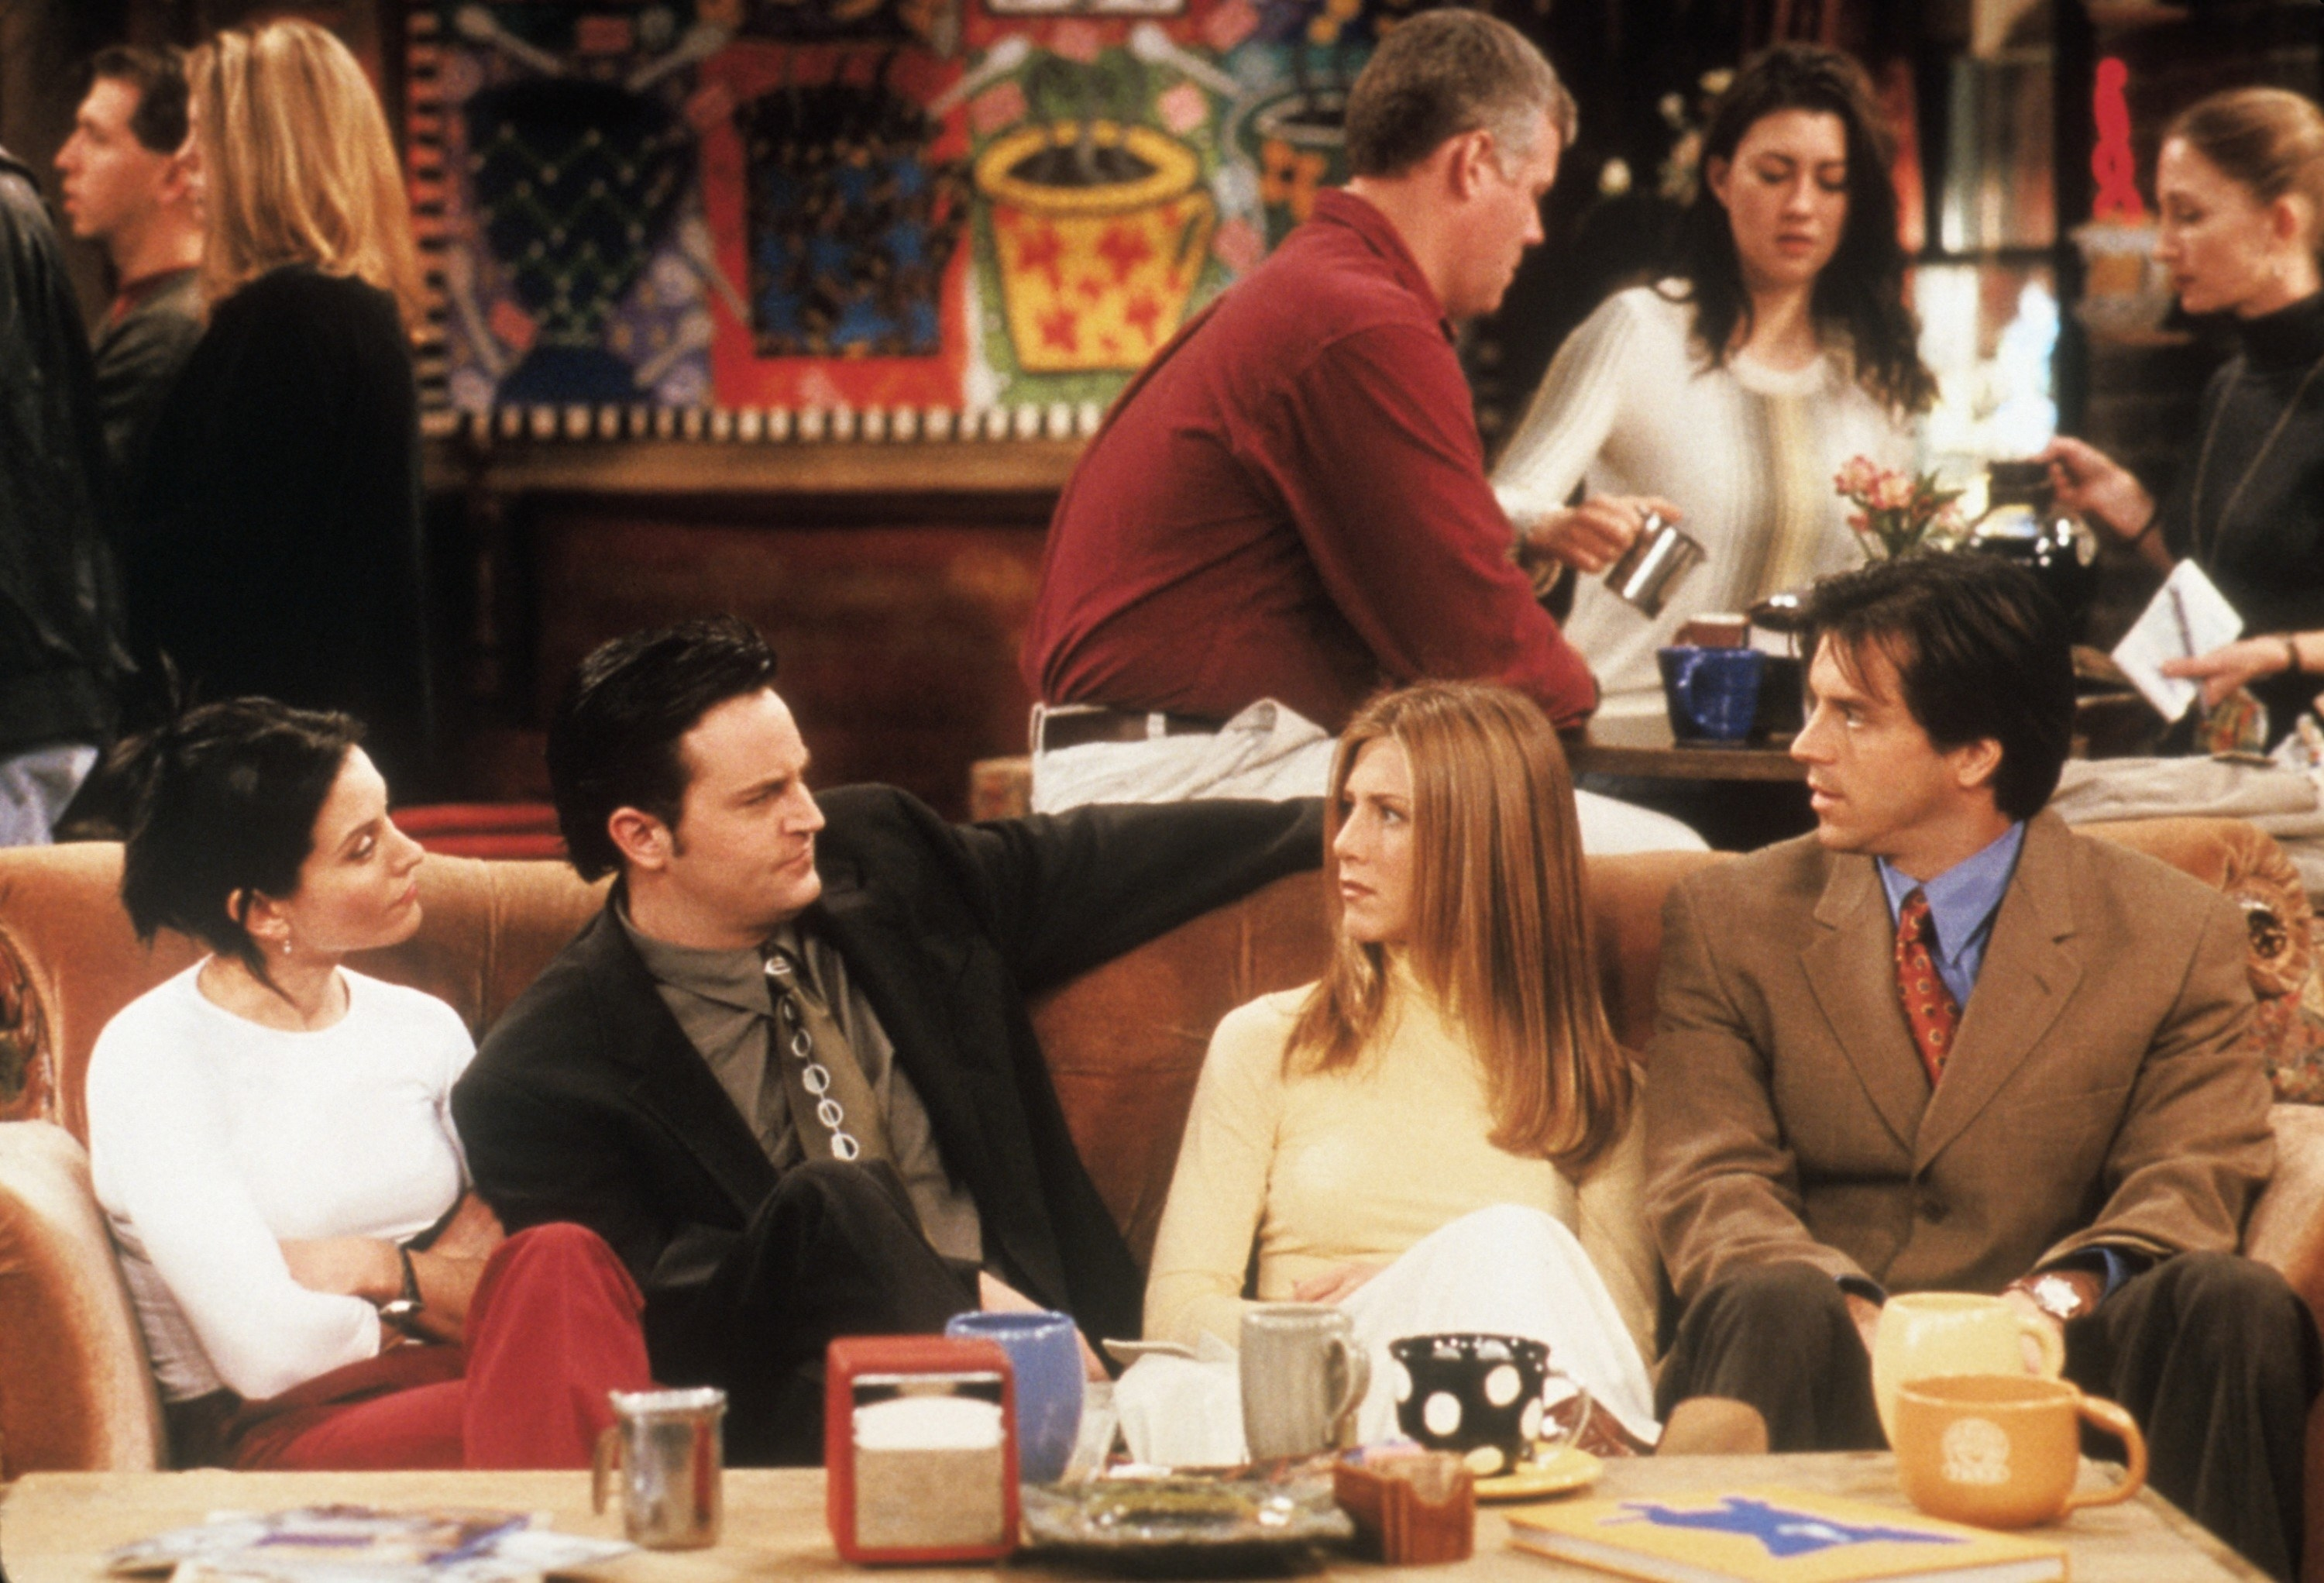 """Monica, Chandler, Rachel, and her date sitting on the couch at Central Perk on """"Friends"""""""